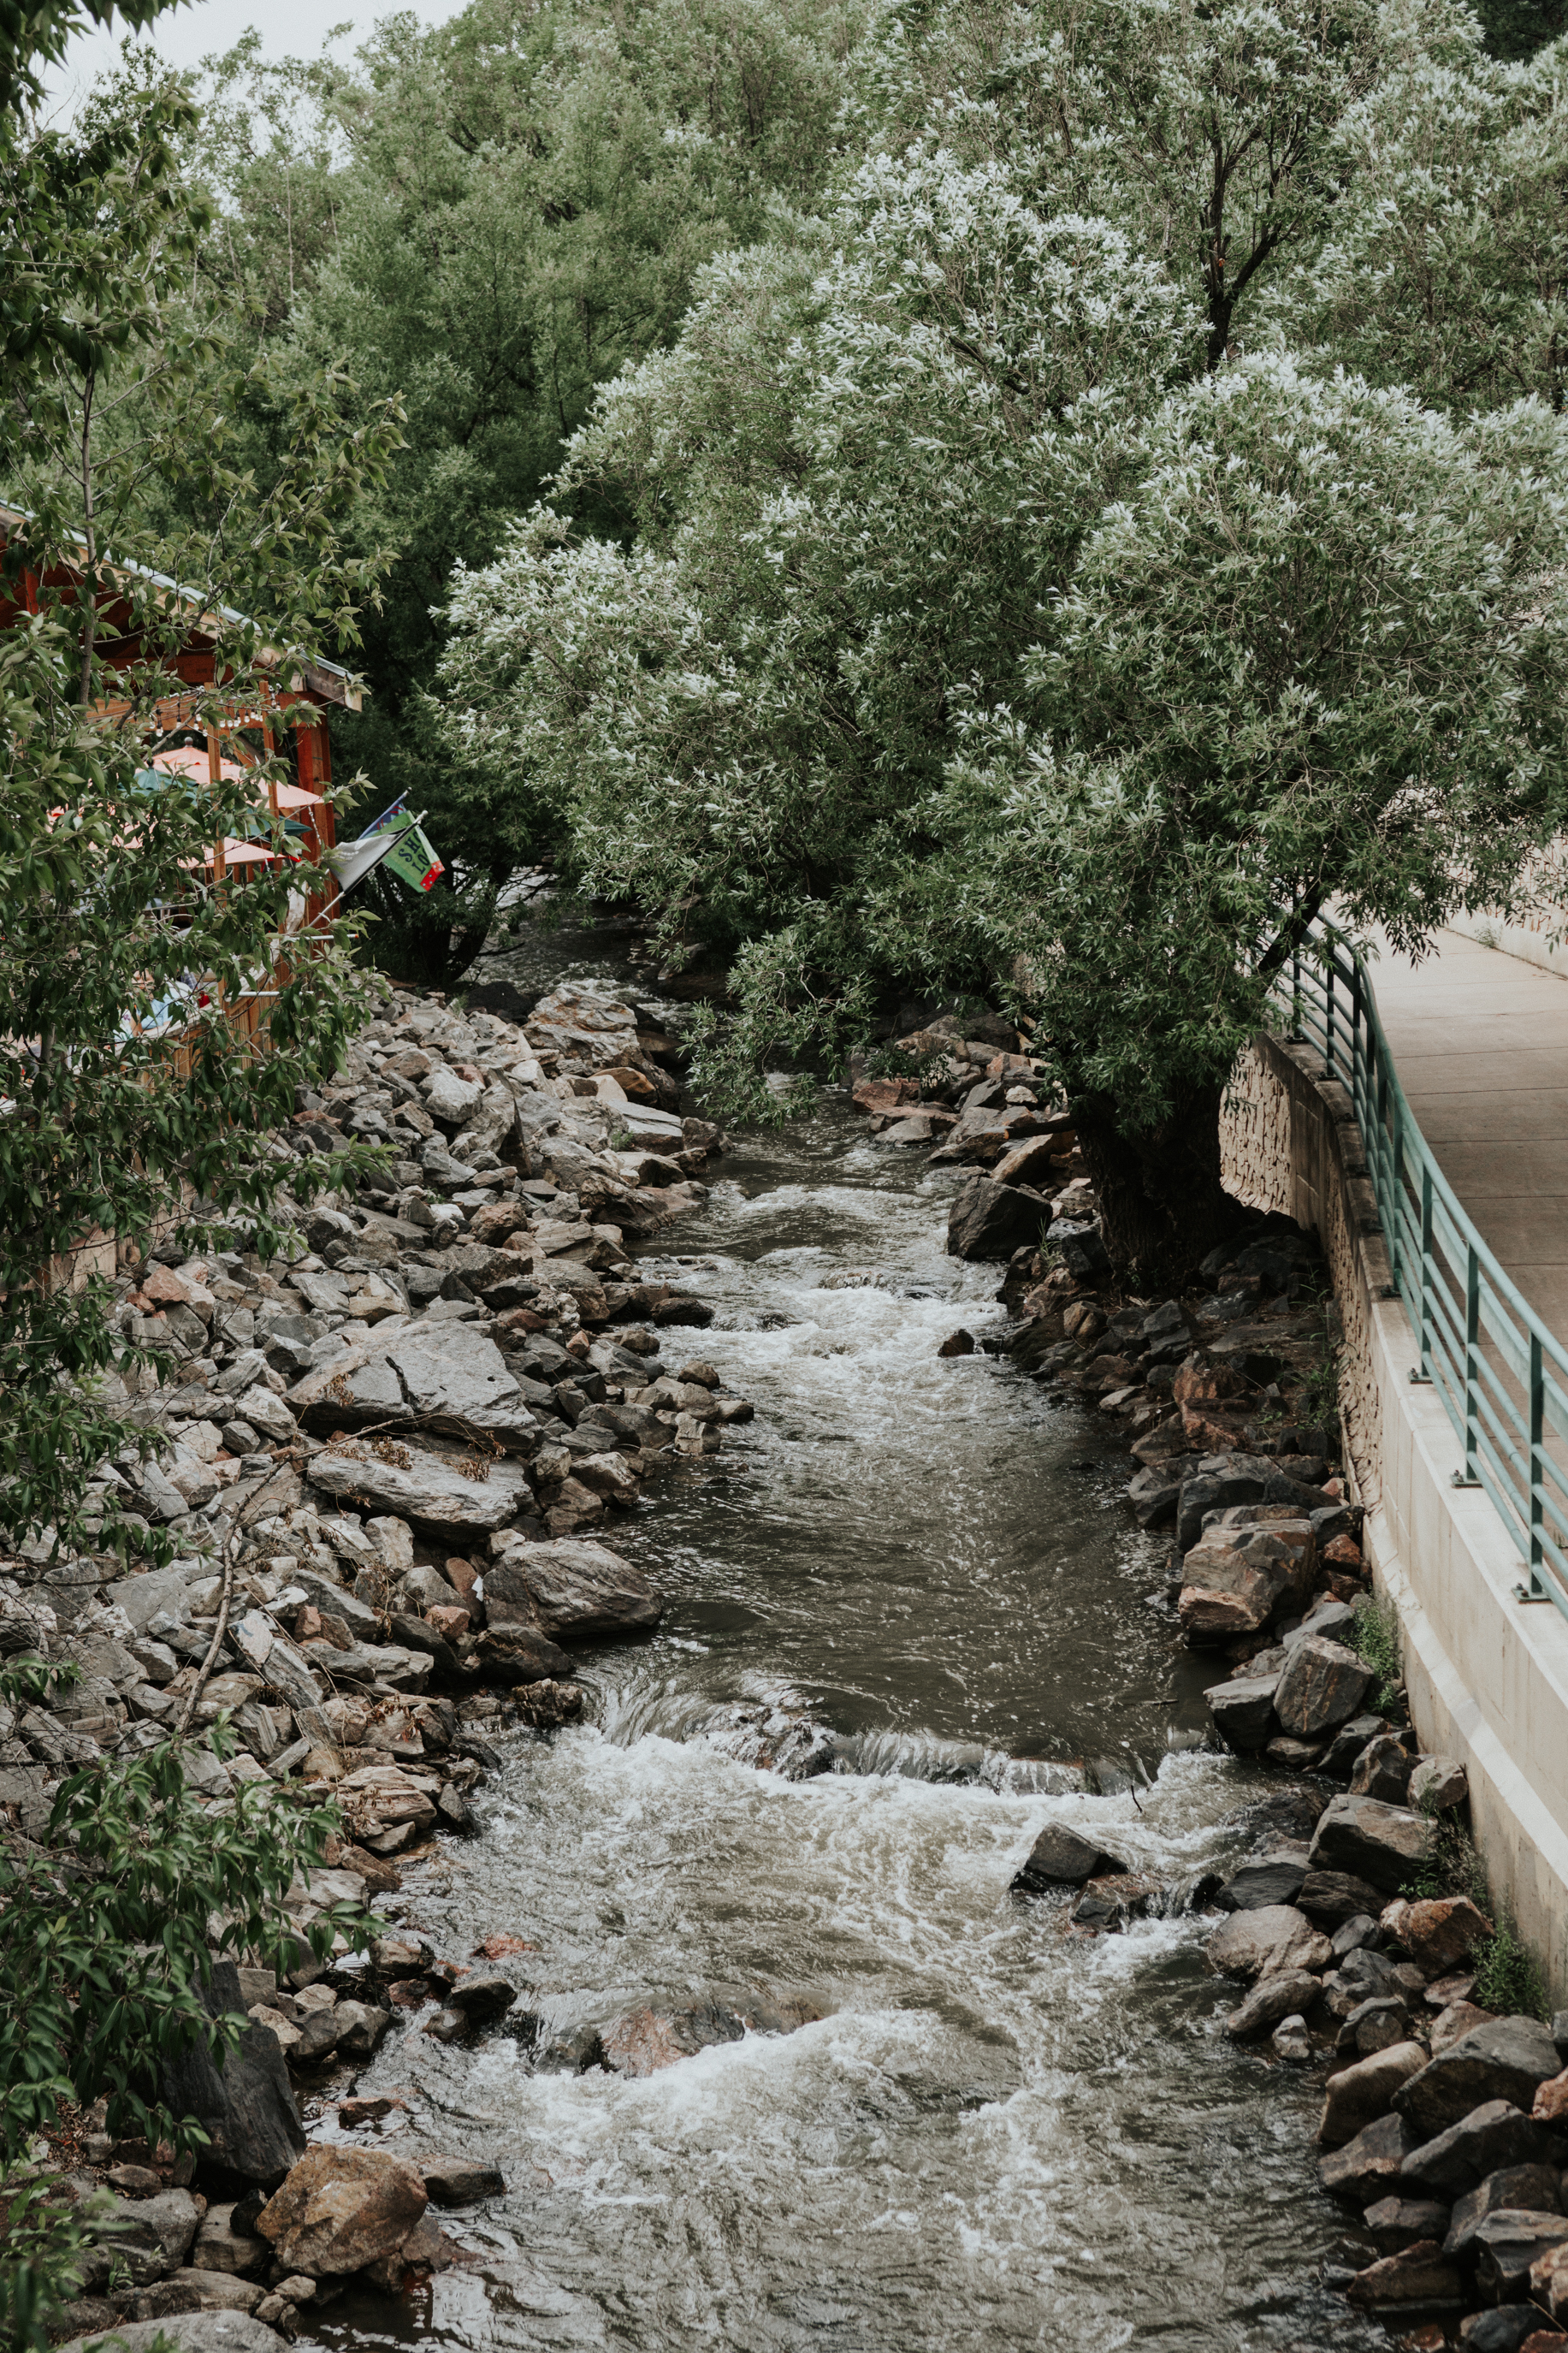 View of Bear Creek passing through downtown Evergreen